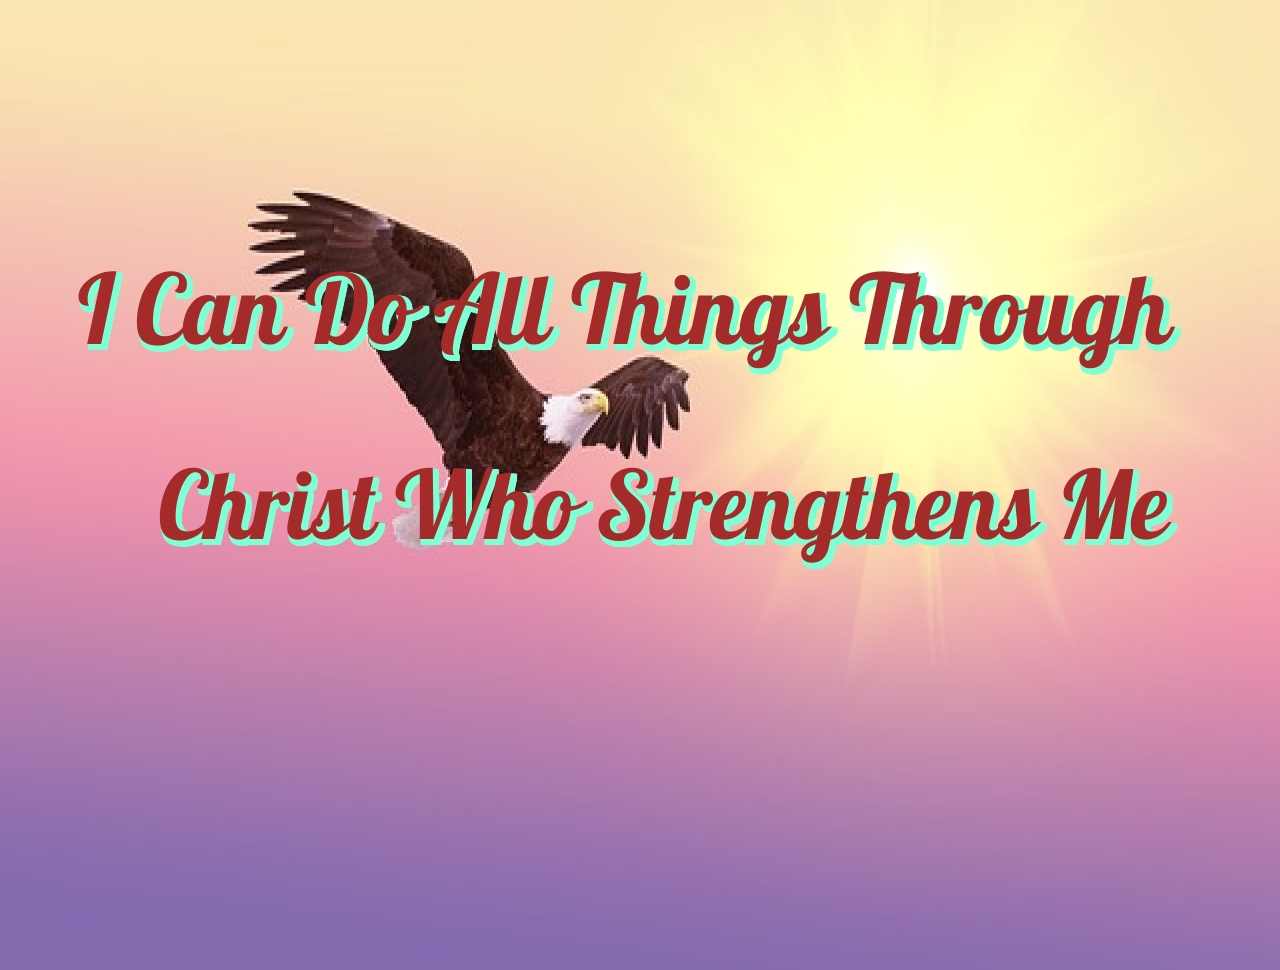 I can do all things and become successful through Christ who strengthens me.